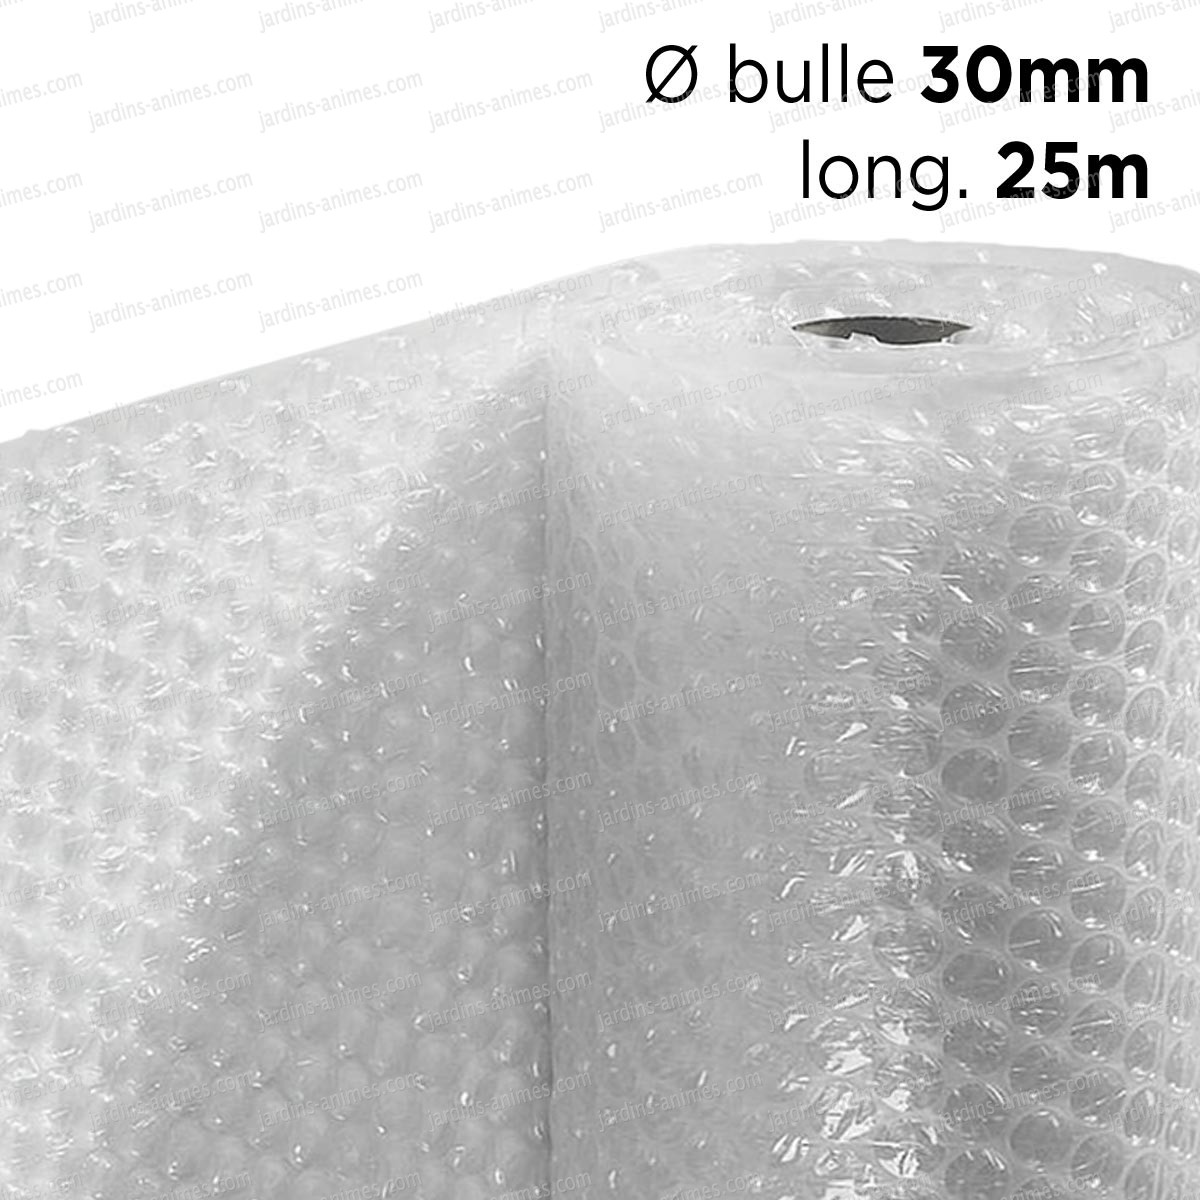 film bulle 30mm d 39 emballage pour isolation serre dim x 25m serre jardin accessoires. Black Bedroom Furniture Sets. Home Design Ideas